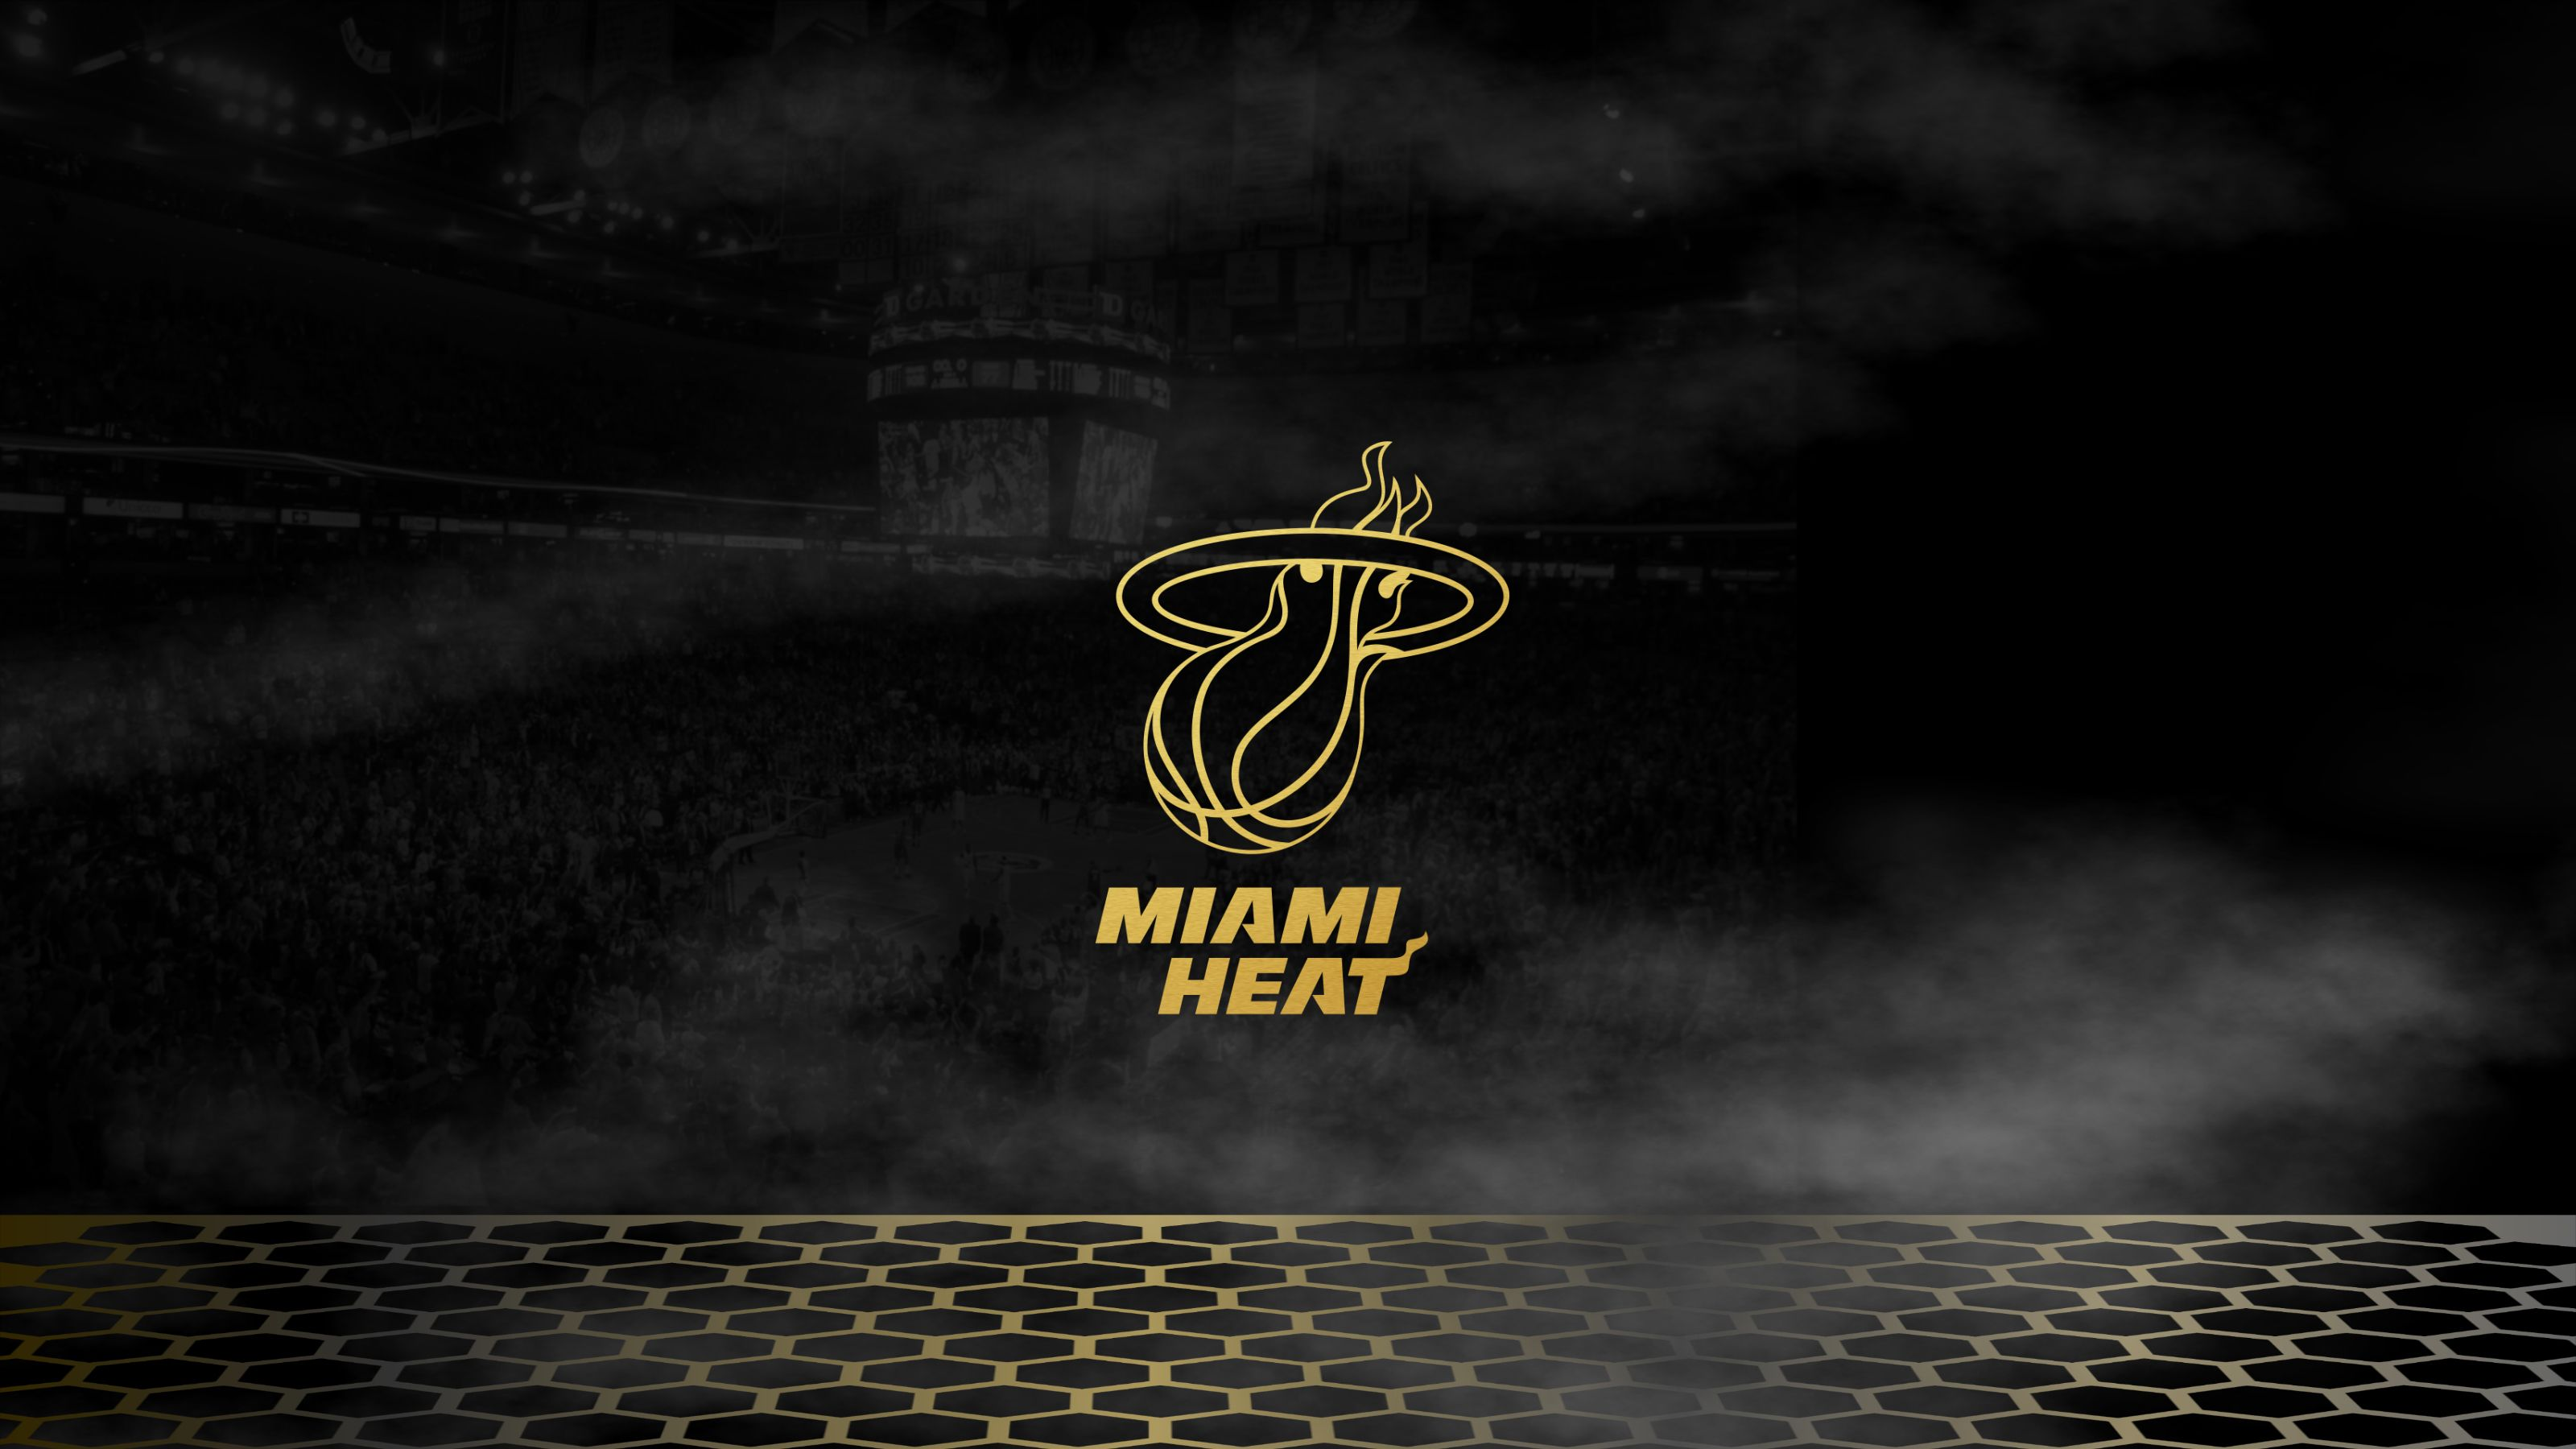 Miami Heat Desktop Background Nba Wallpaper In 2020 Nba Wallpapers Nba Background Miami Heat